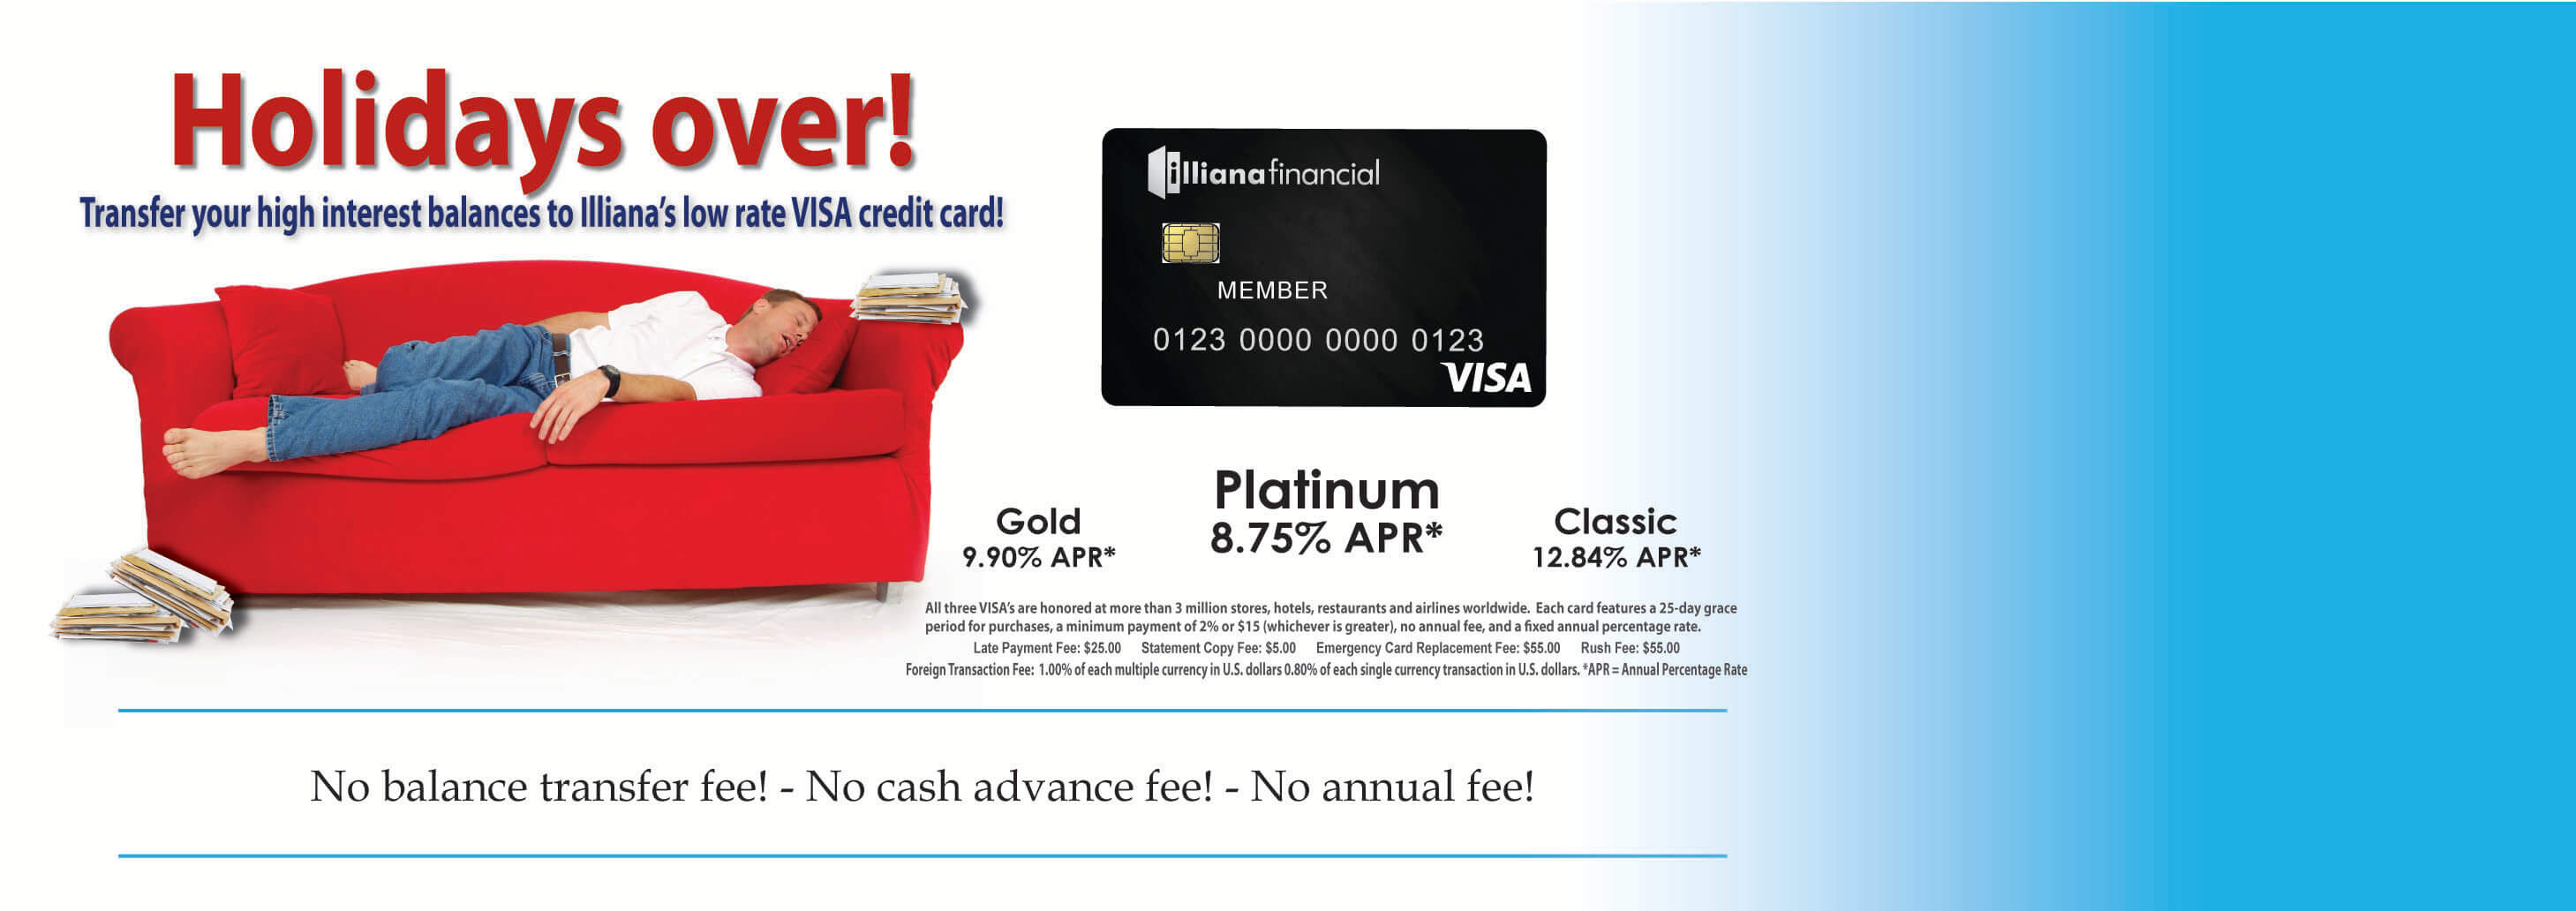 Visa Credit Card for after the Holidays